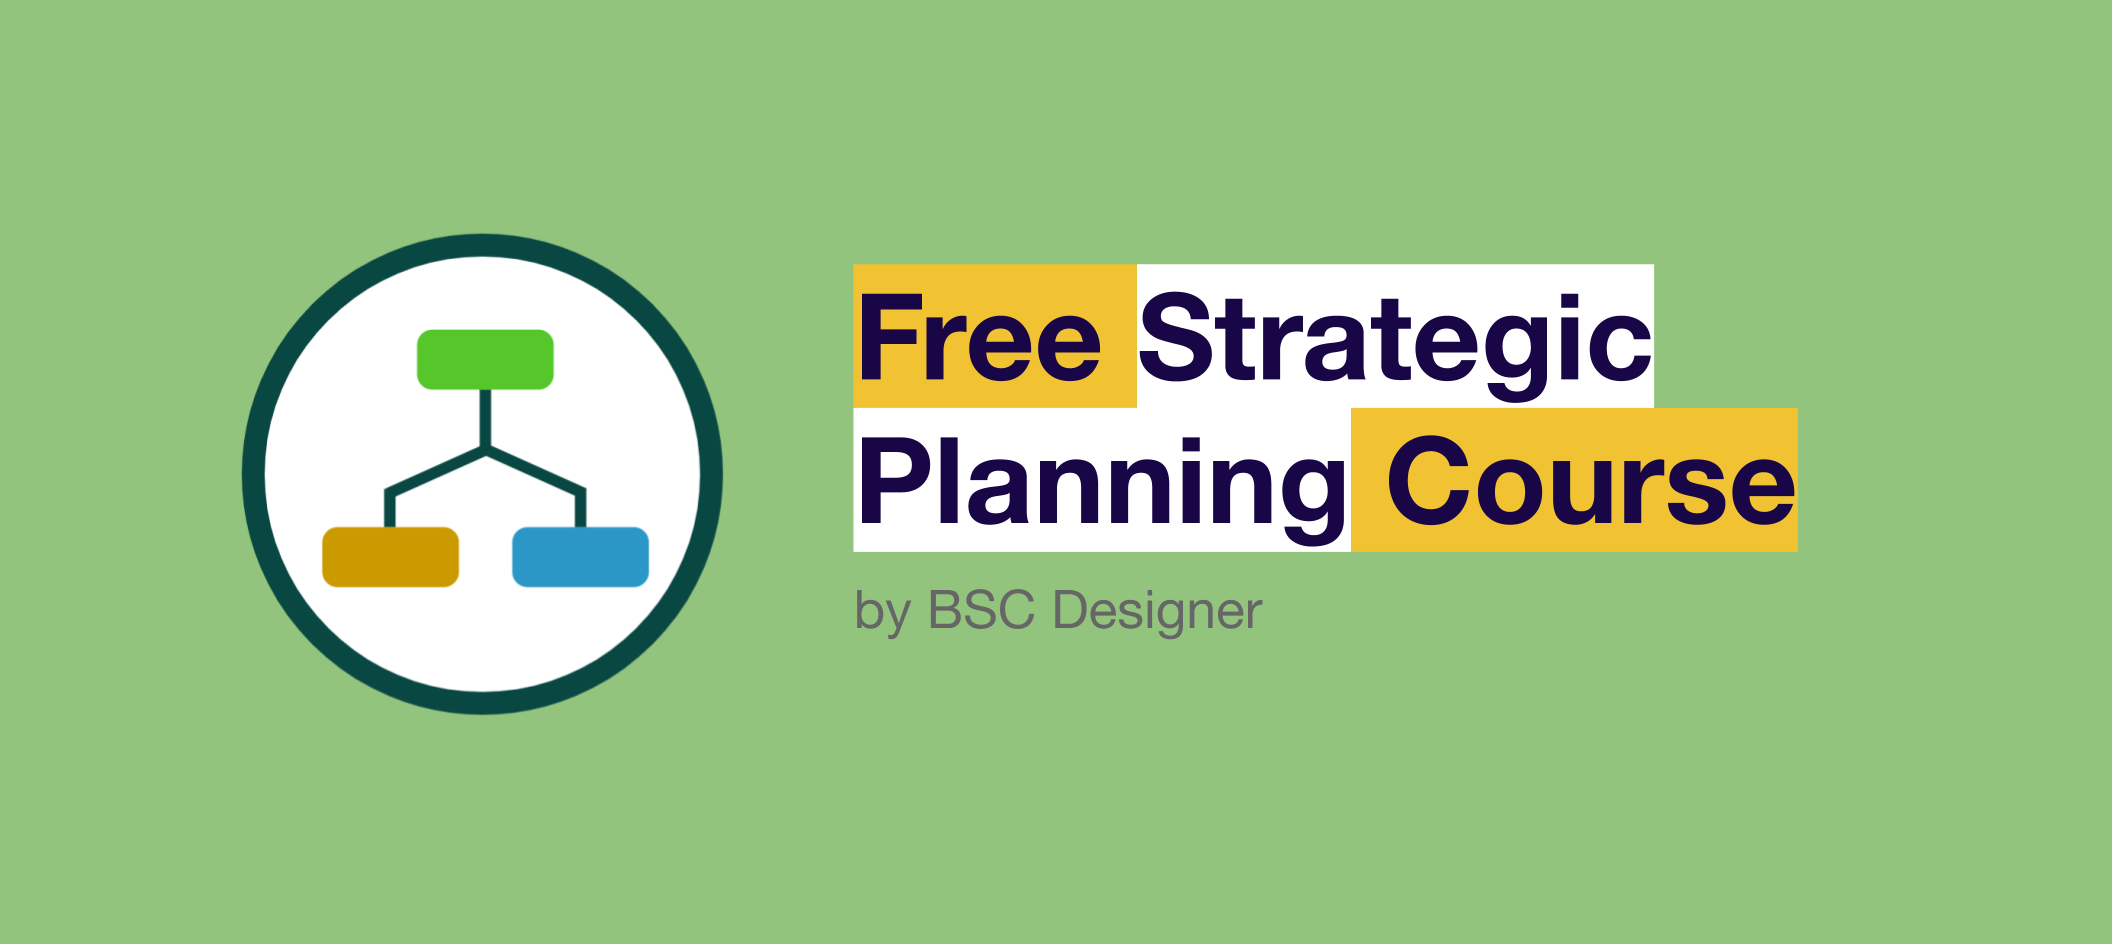 Free Strategic Planning Course by BSC Designer